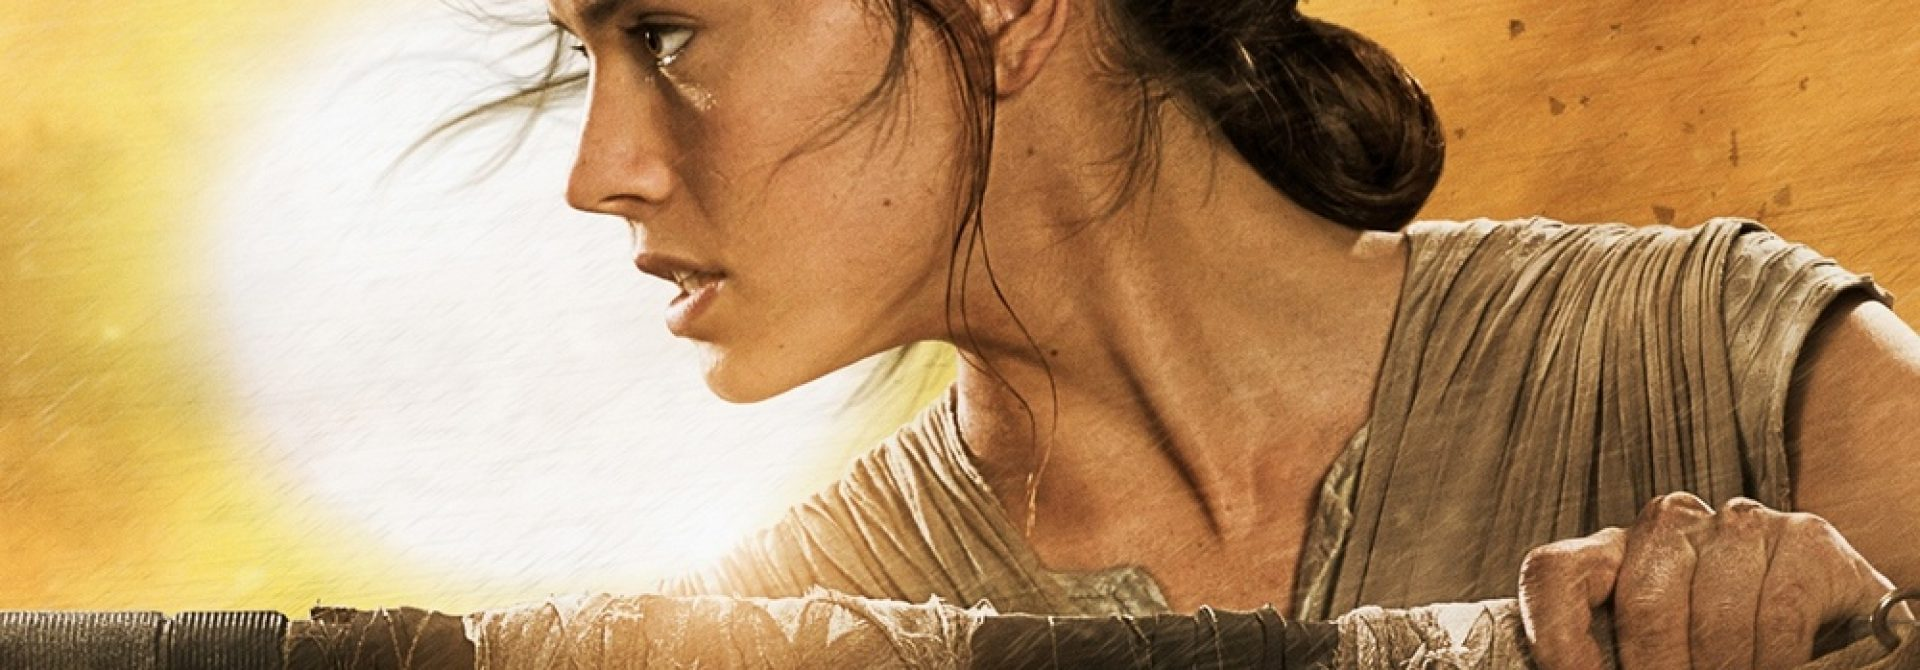 Daisy Ridley Won't Be In Any Star Wars Films After Episode IX